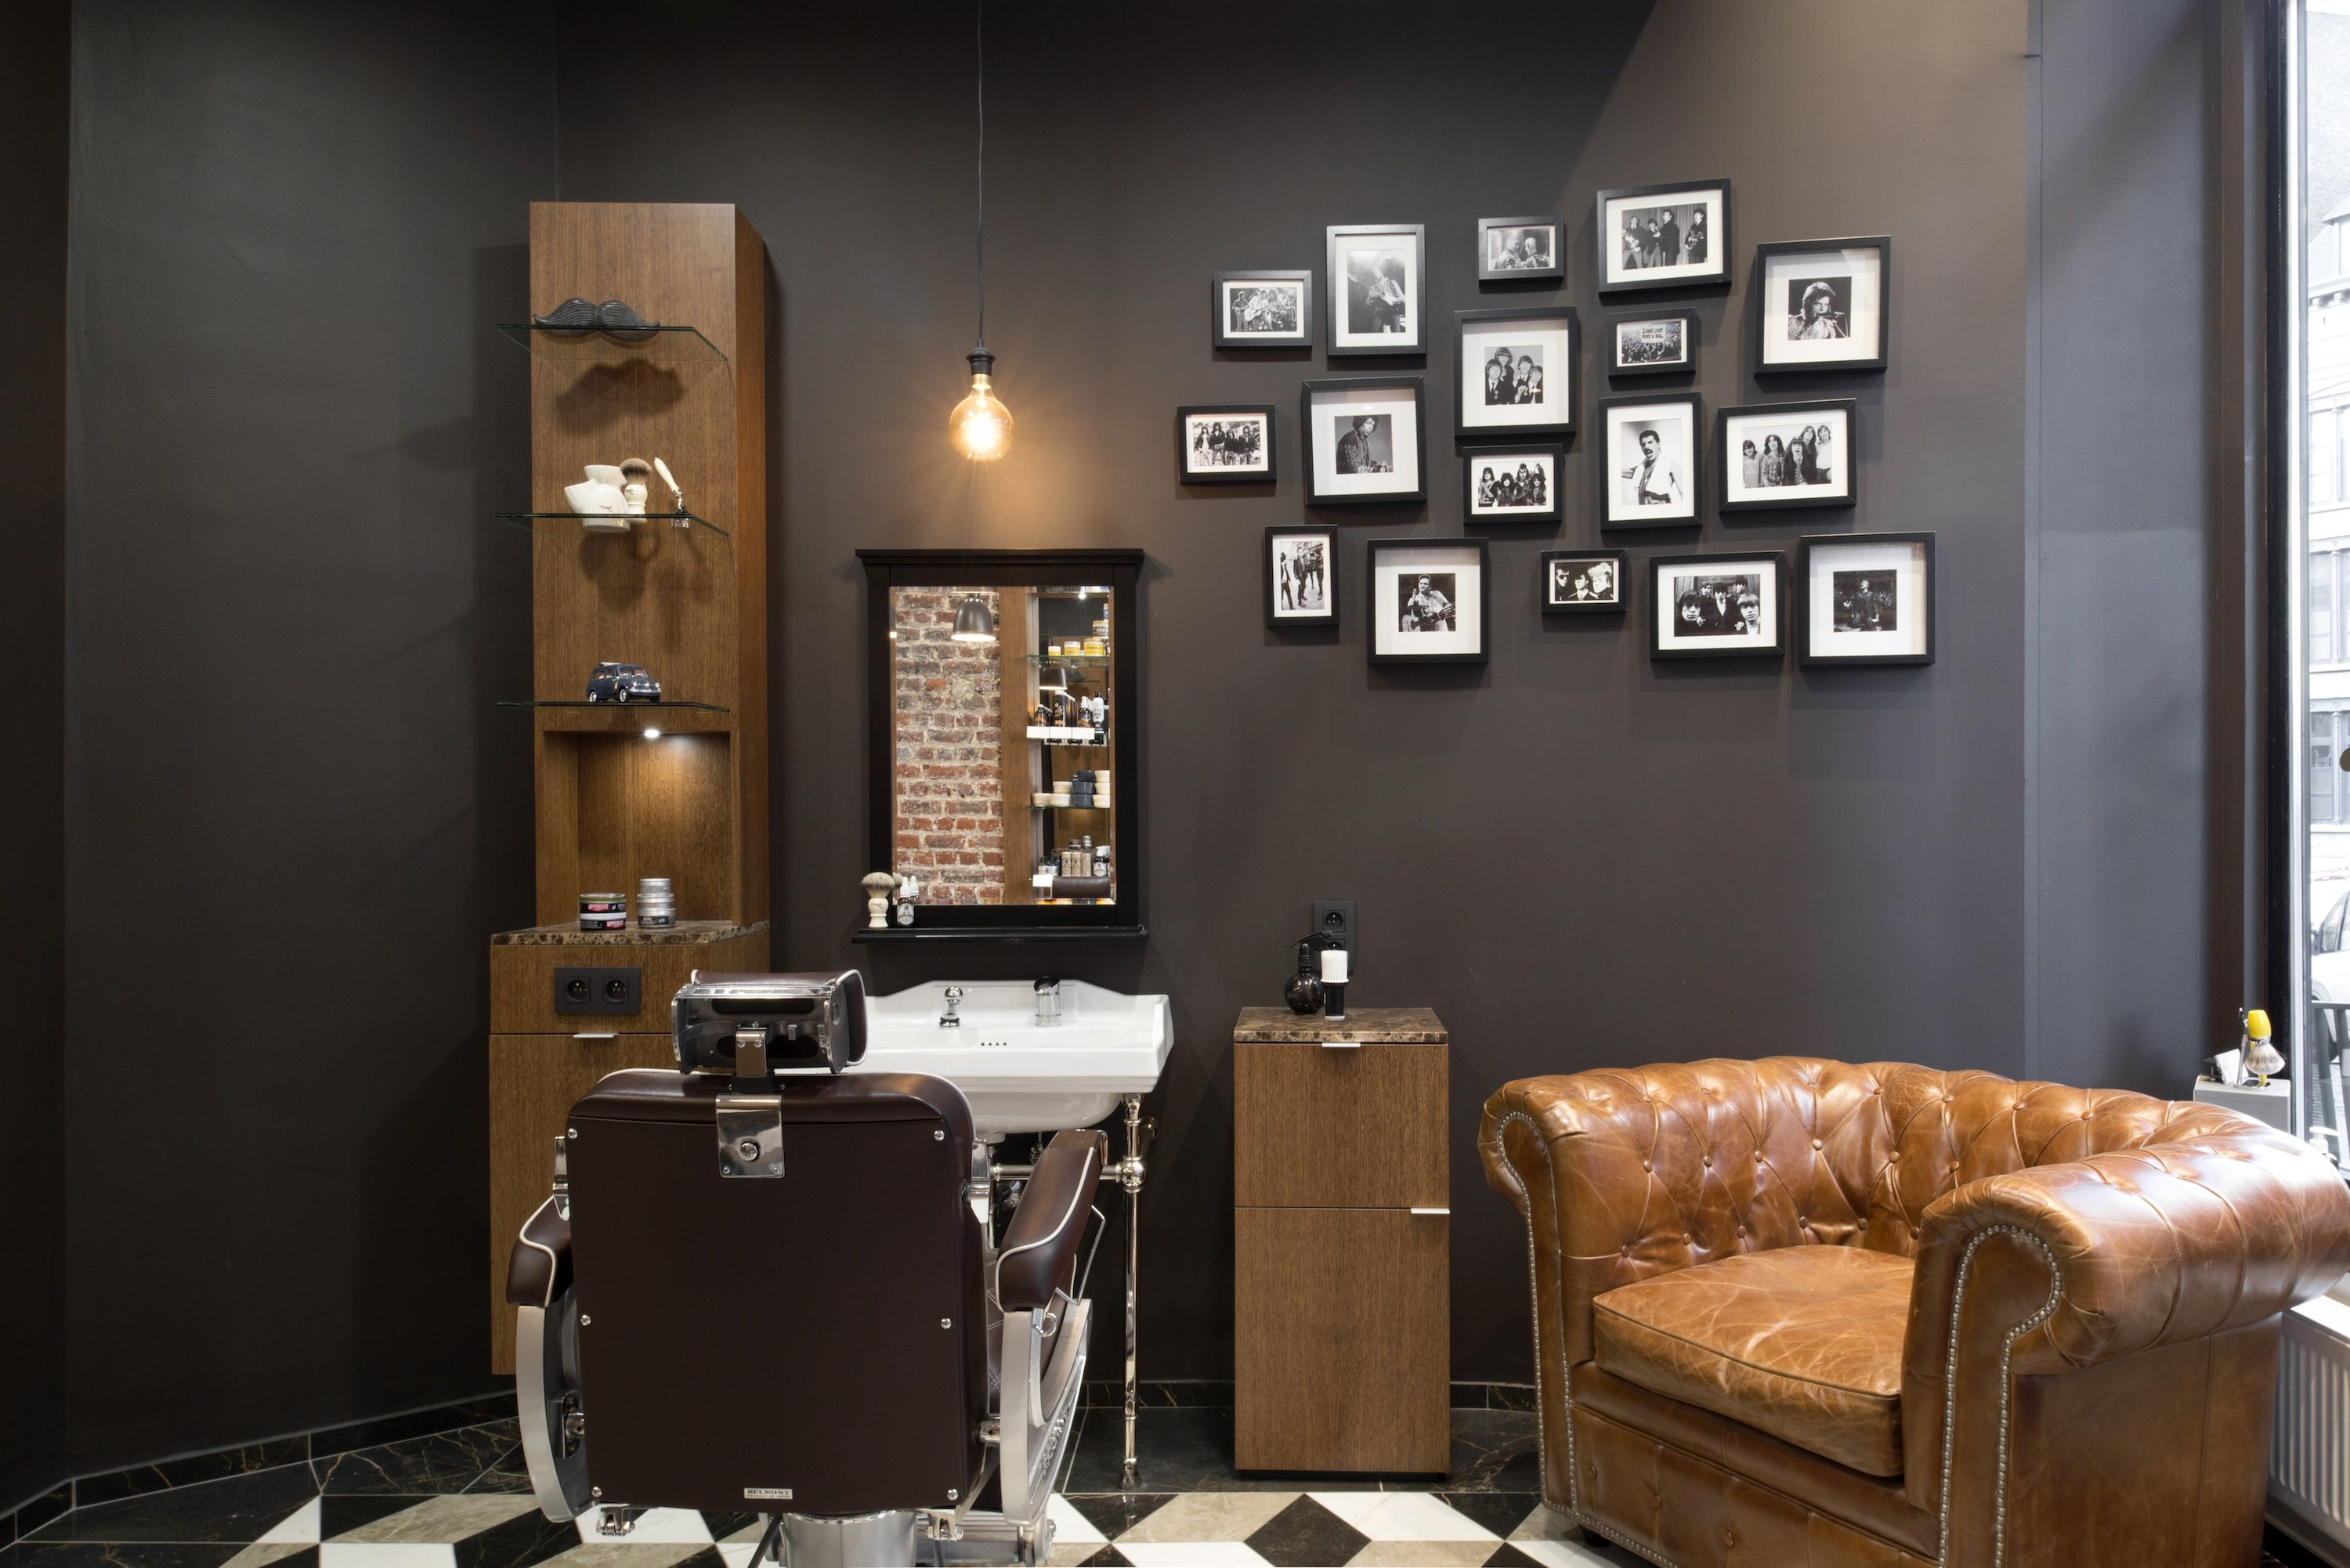 Barber shop barbershop kapsalon gammabenelux kapper for Kapper meubels